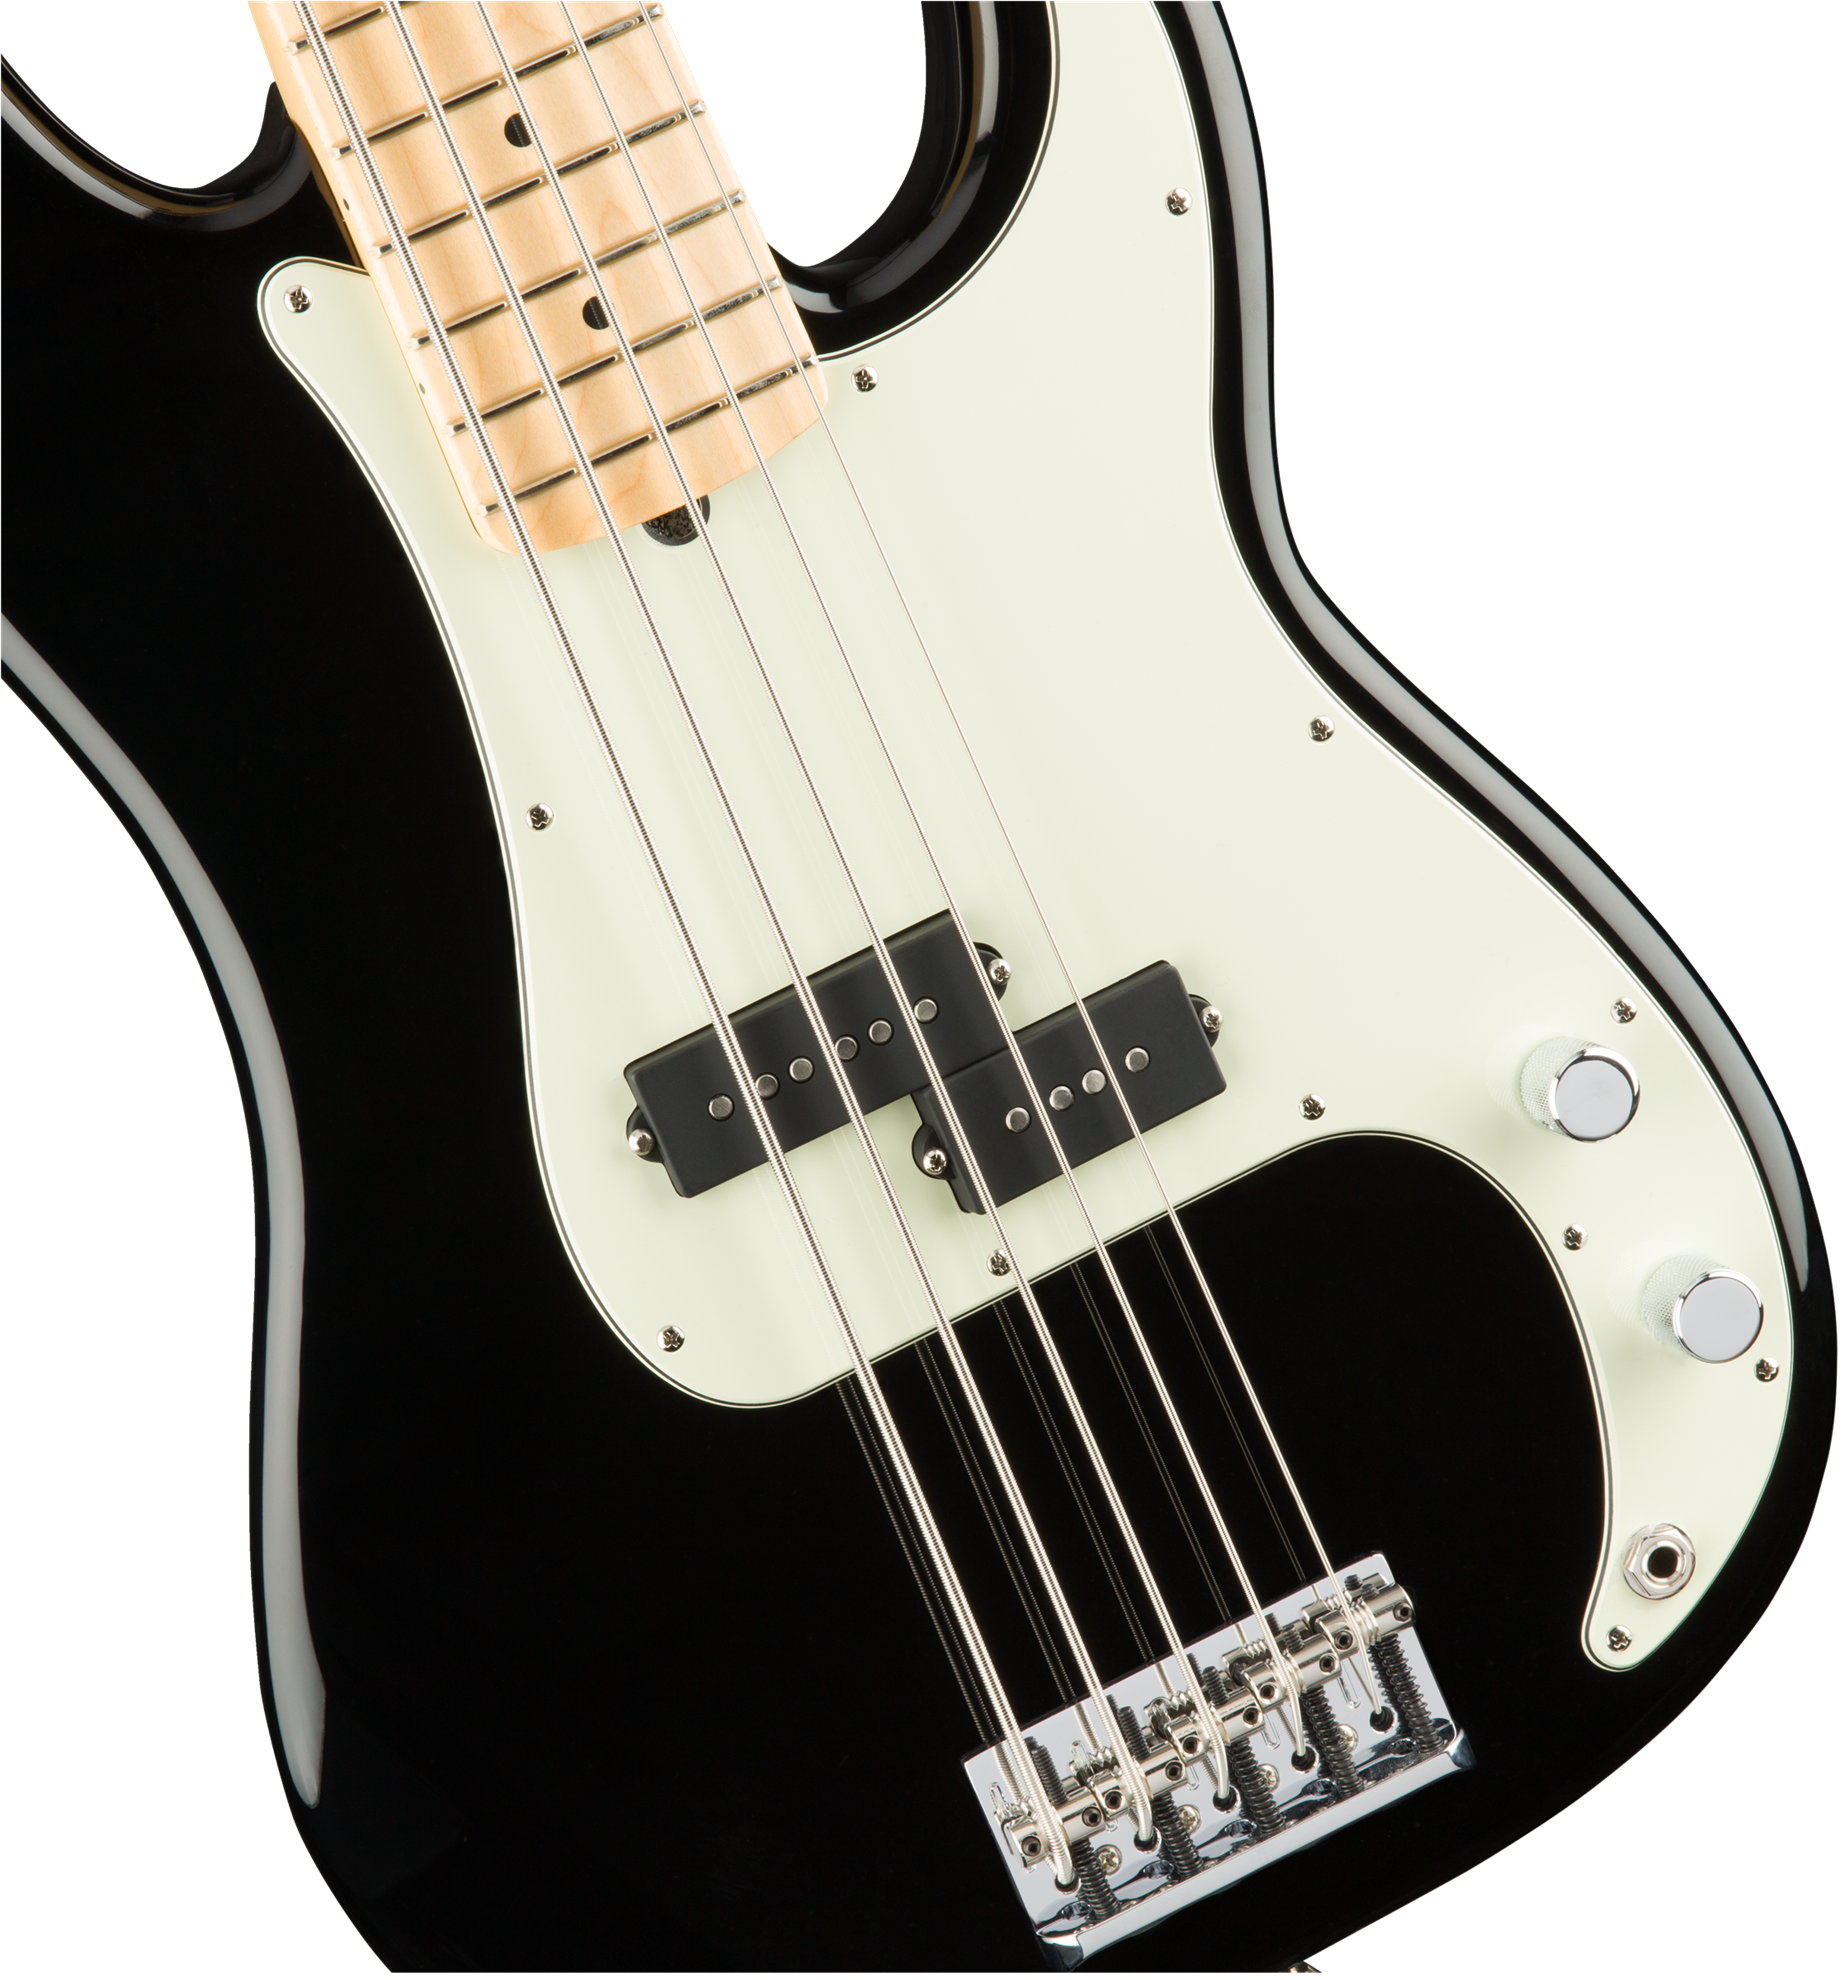 Fender American Professional 5 String Precision Bass Guitar - Maple Neck - Black